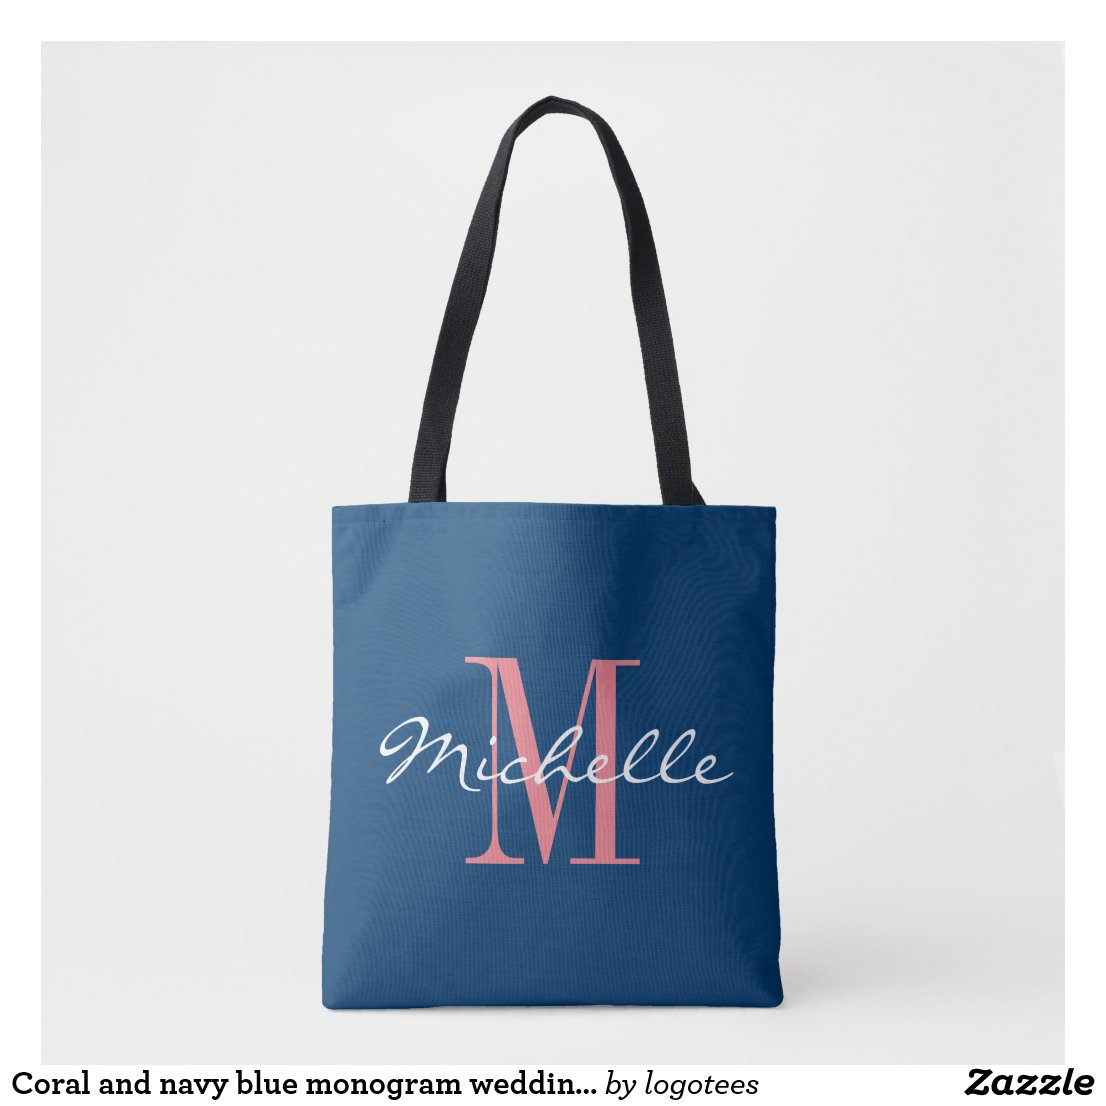 Coral and navy blue monogram wedding tote bag